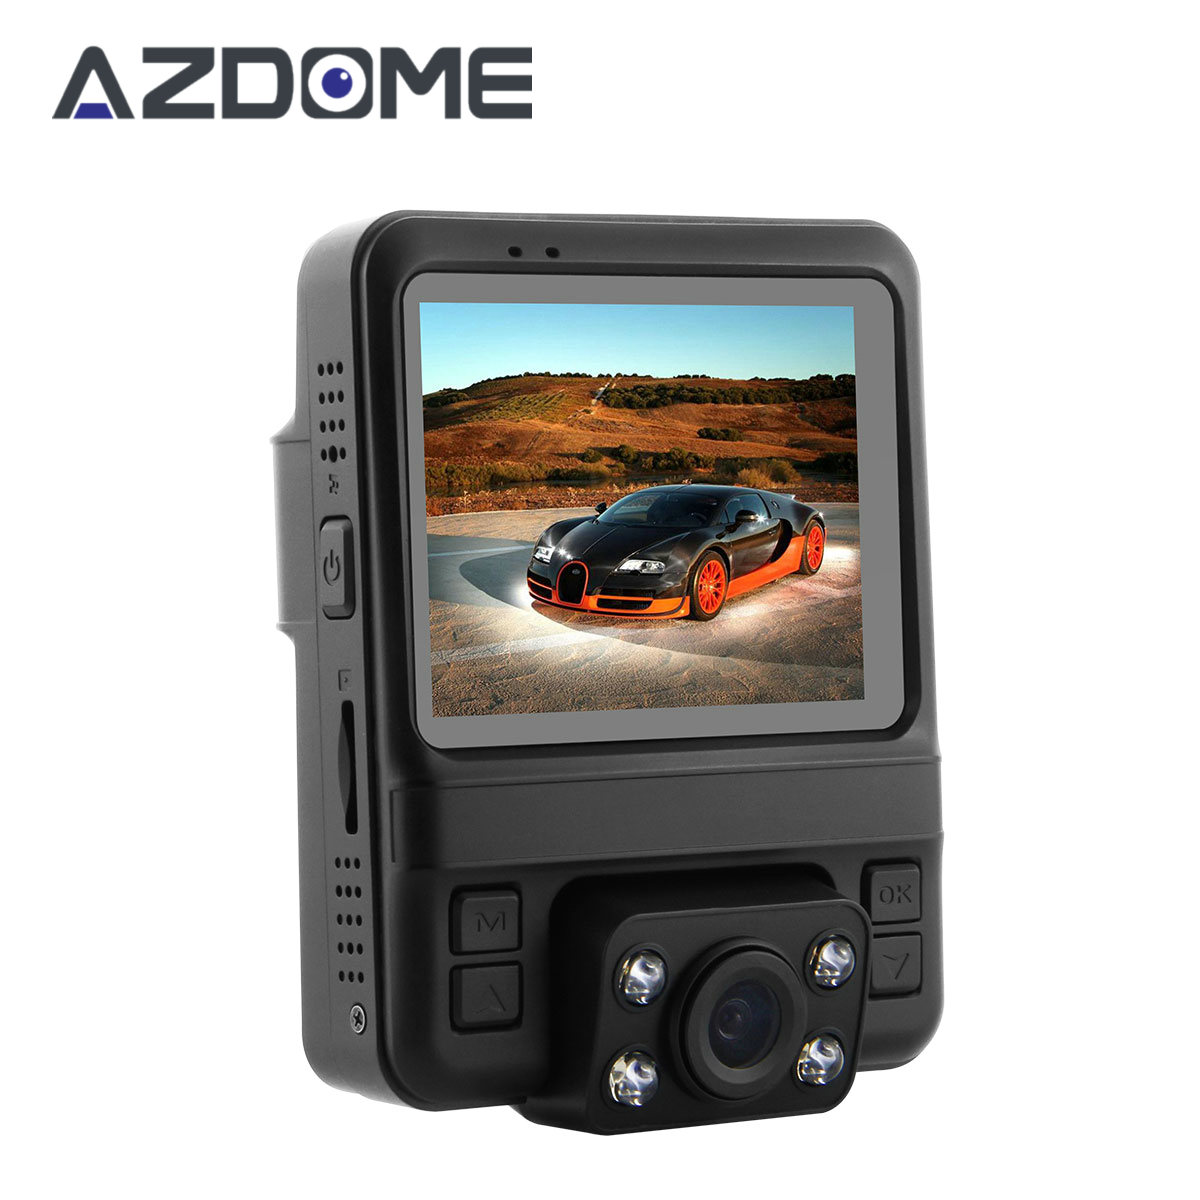 Azdome GS65H Dual Lens Car DVR Novatek 96655 Car Camera 1920x1080P Full HD Dash Cam Built-in GPS Video Recorder Night Vision H46 junsun car dvr camera video recorder wifi app manipulation full hd 1080p novatek 96655 imx 322 dash cam registrator black box